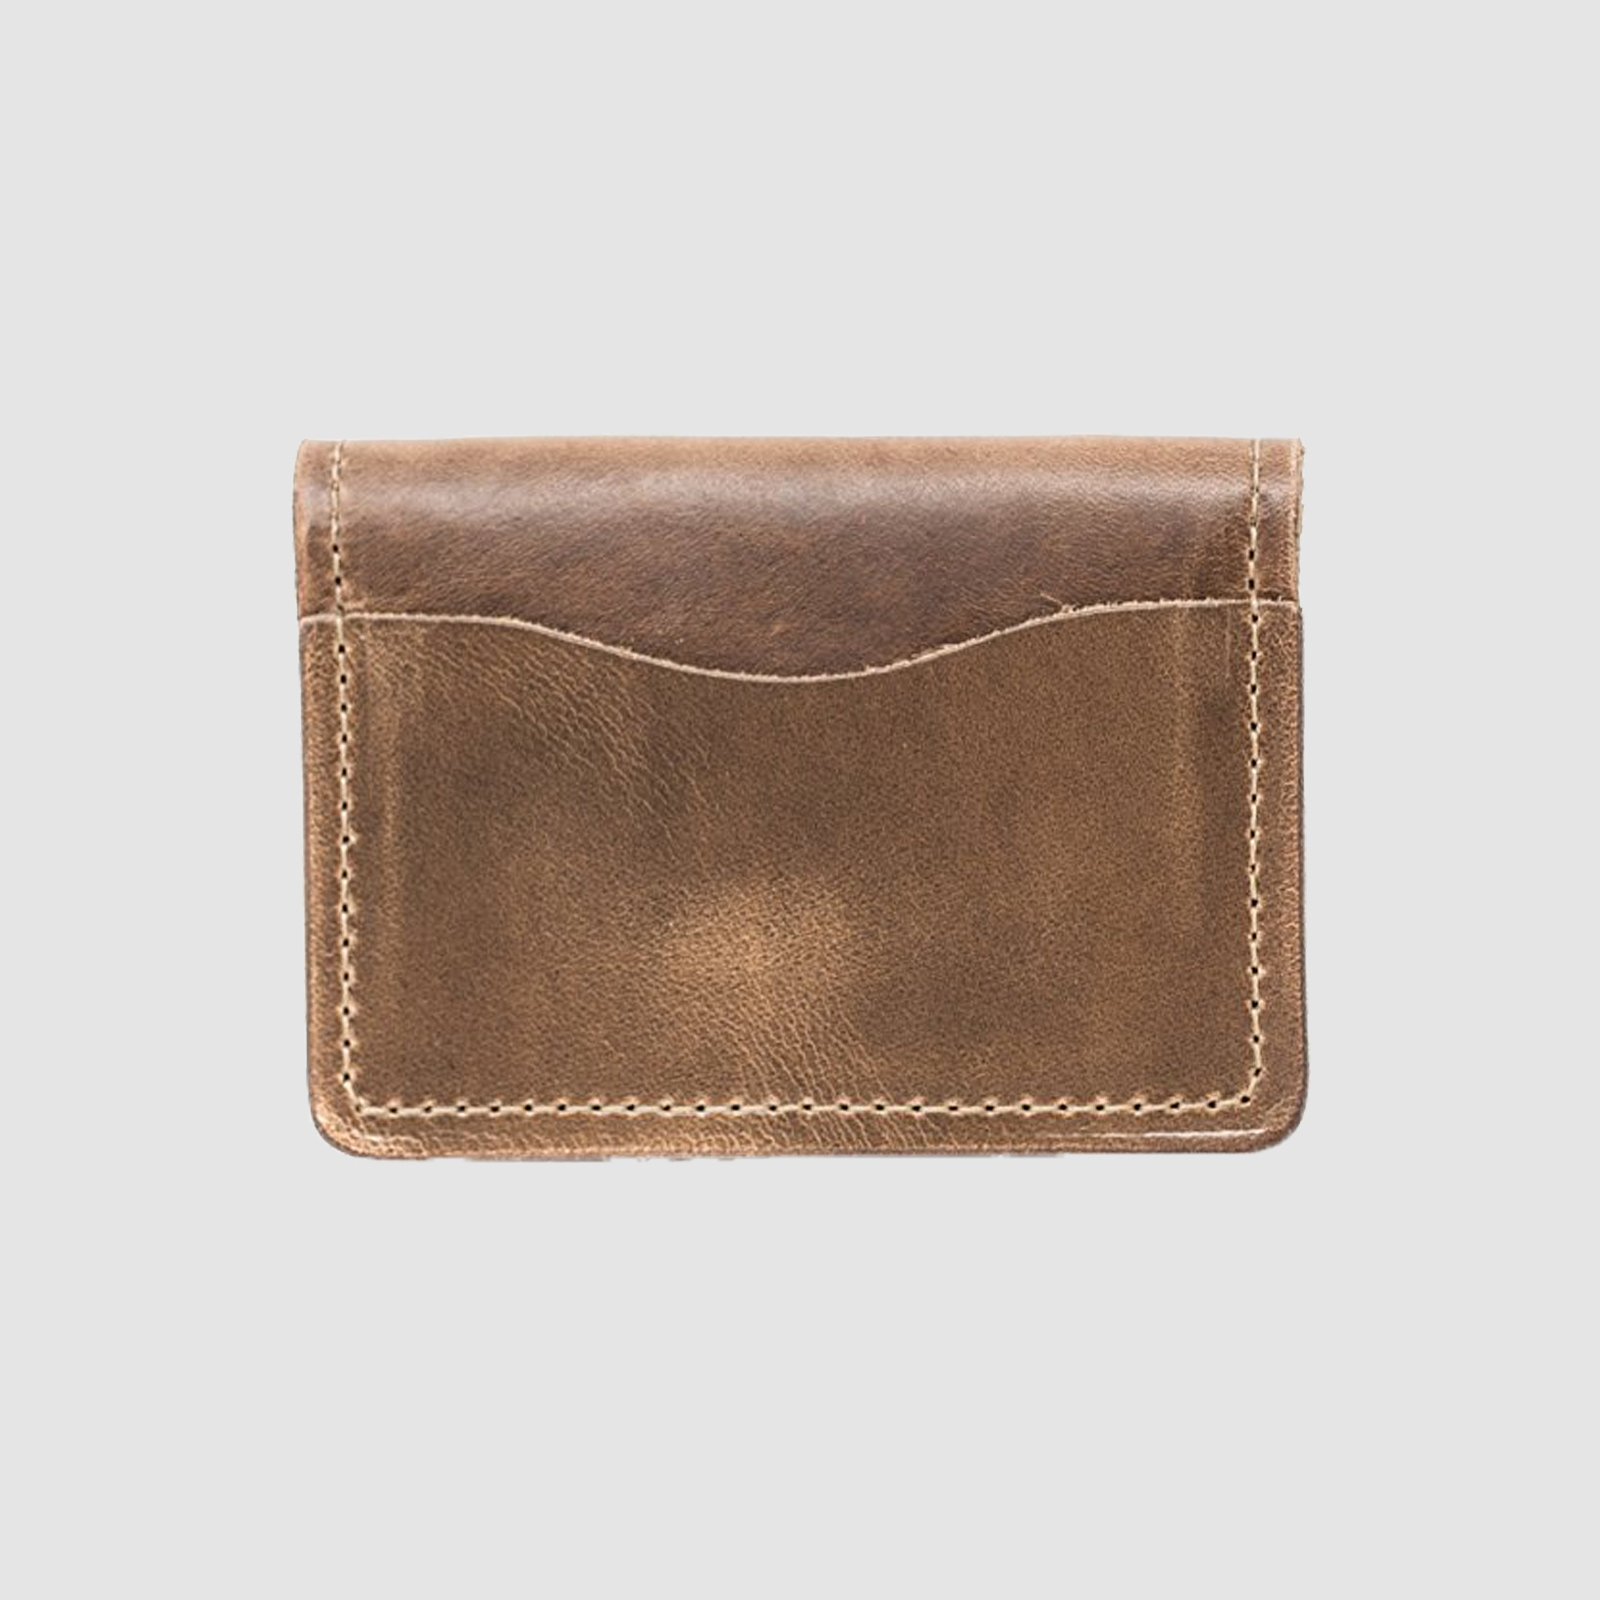 Popov Leather 5 Card Wallet | $49 | Amazon